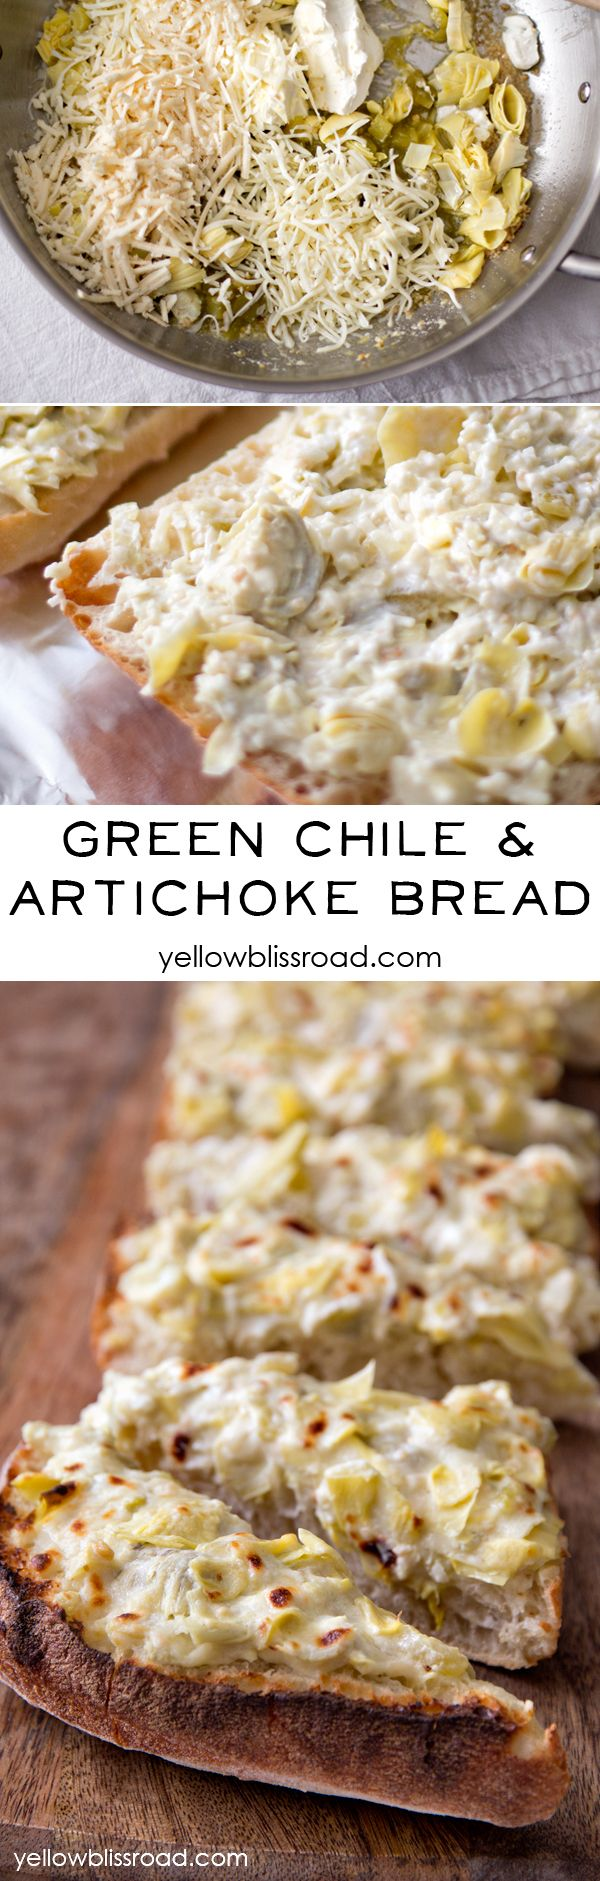 Green Chile & Artichoke Bread - a delicious appetizer and perfect for your next party from @Kristin Plucker Plucker Plucker Plucker Plucker Plucker Plucker Plucker Bergthold | Yellow Bliss Road